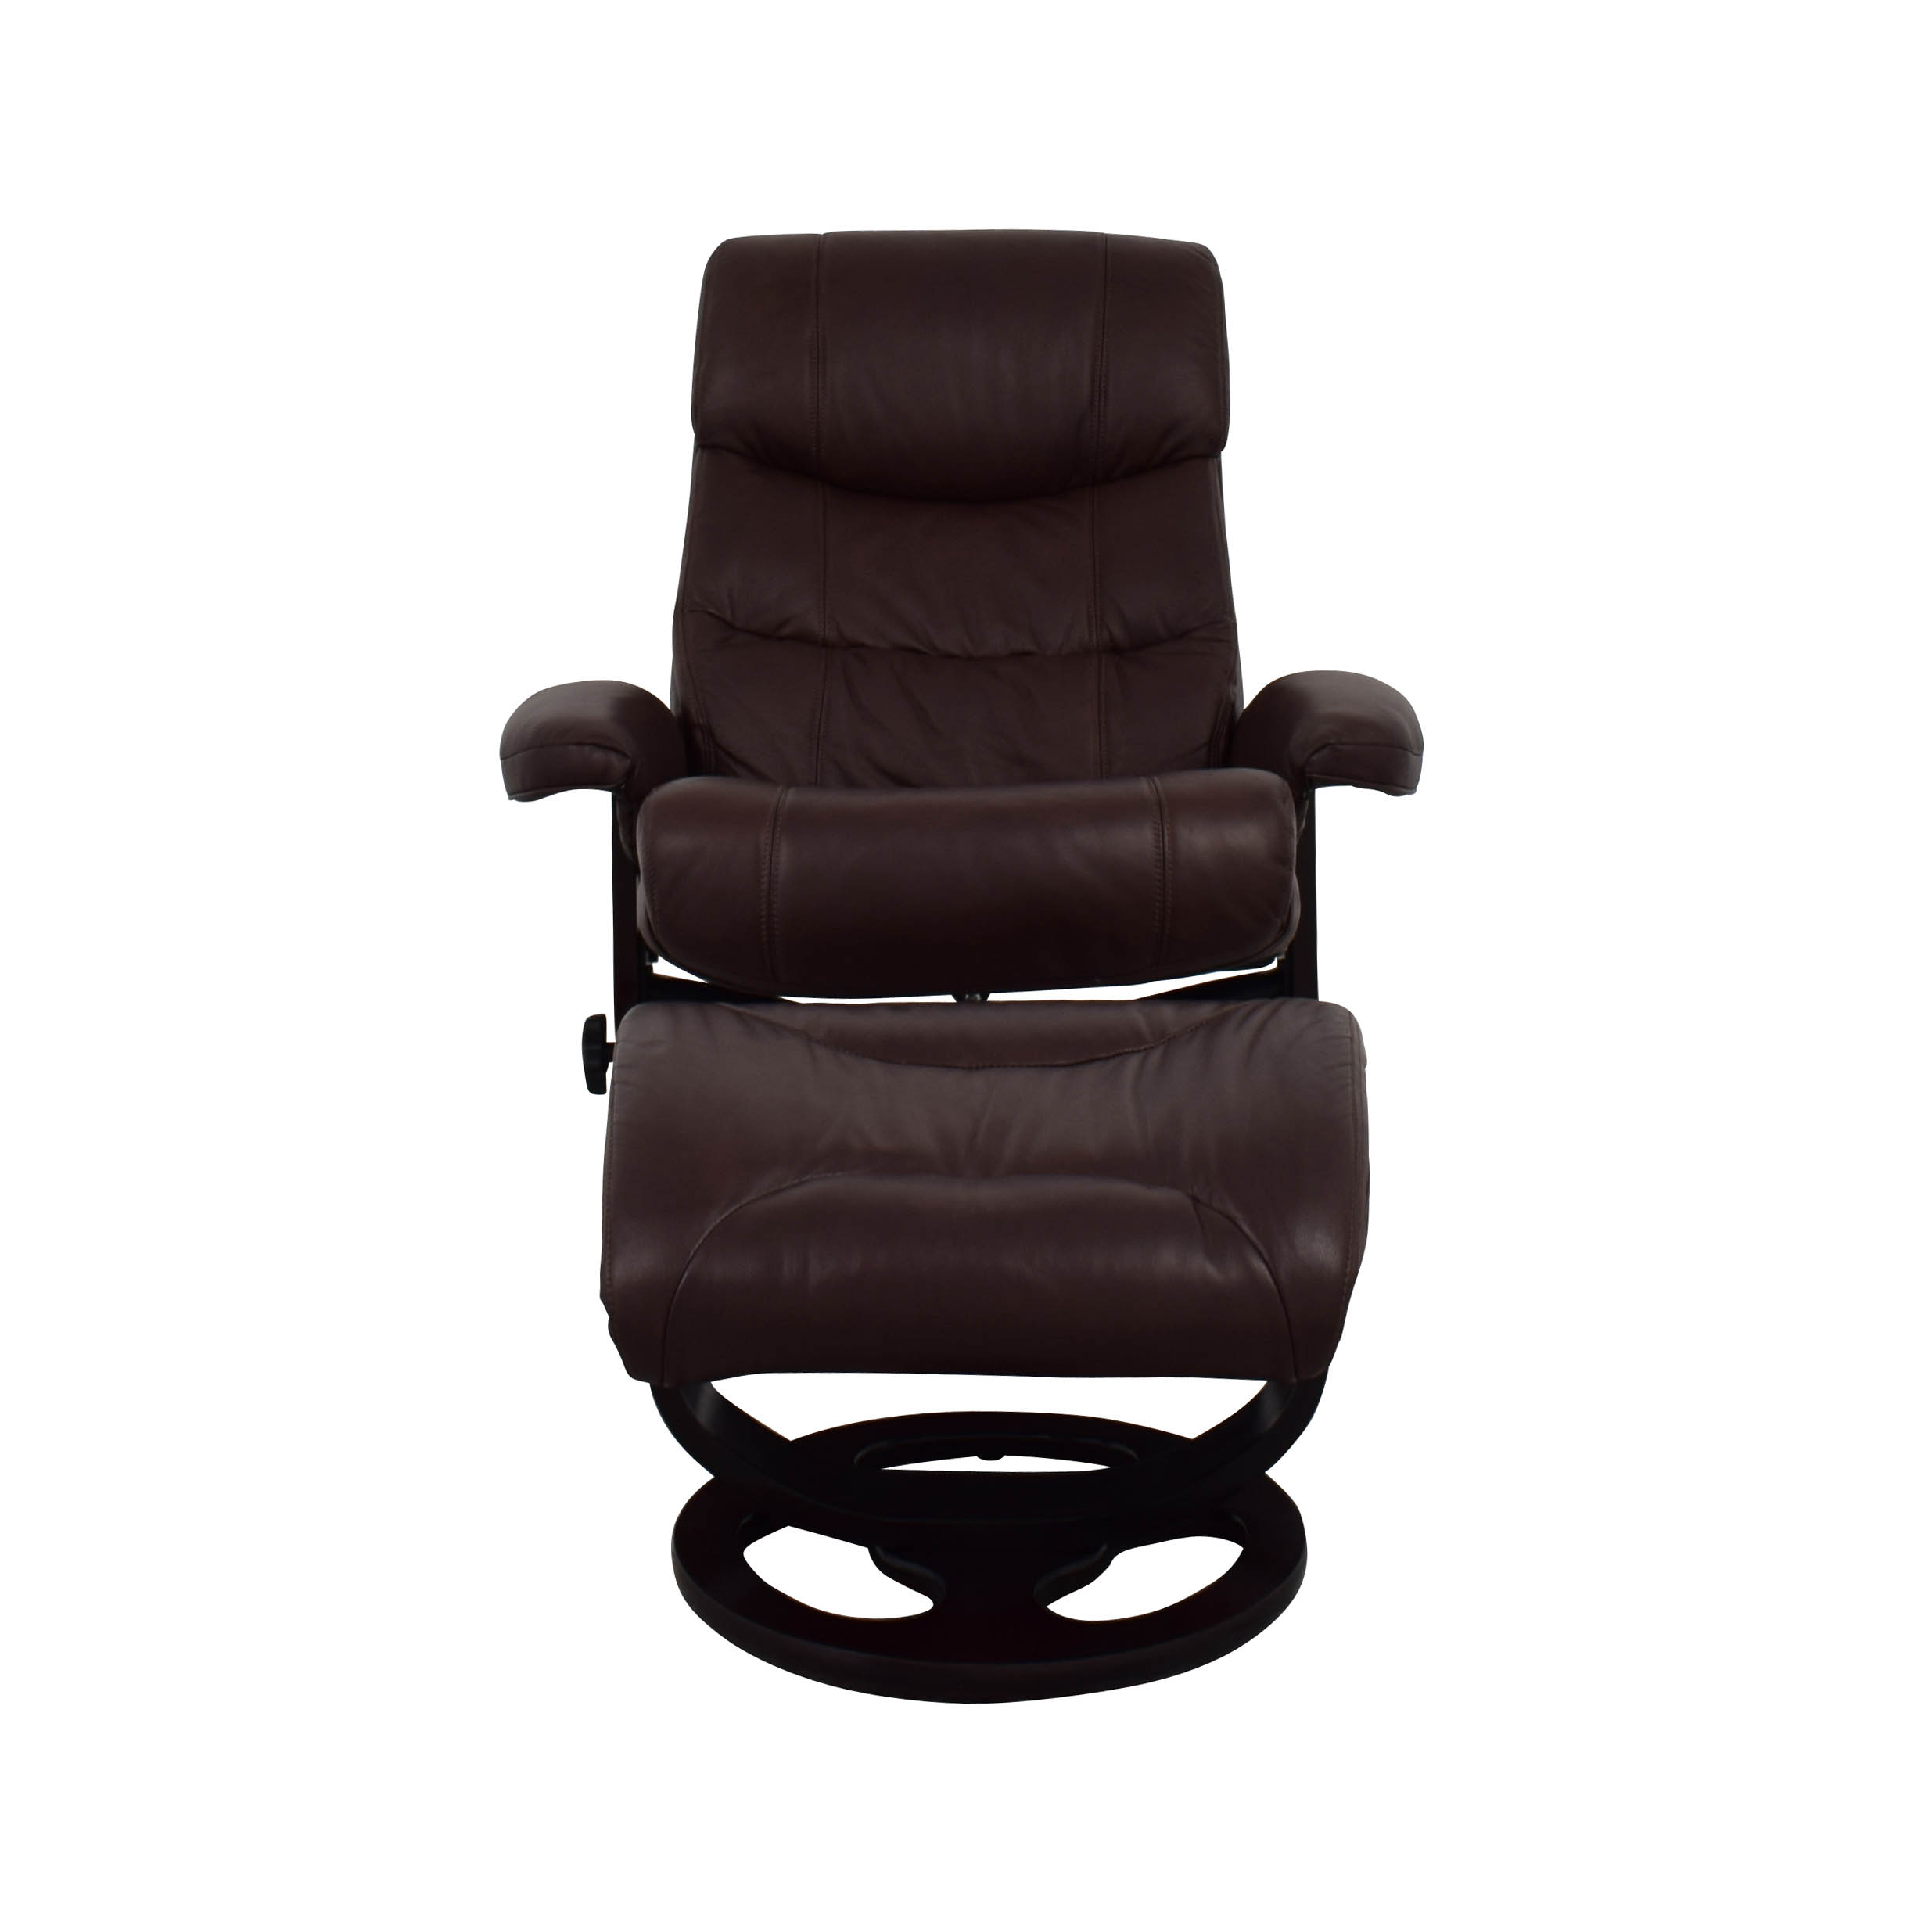 Macyu0027s Macyu0027s Aby Brown Leather Recliner Chair u0026 Ottoman Chairs  sc 1 st  Furnishare & 48% OFF - Macyu0027s Macyu0027s Harrison Brown Leather Pushback Recliner ... islam-shia.org